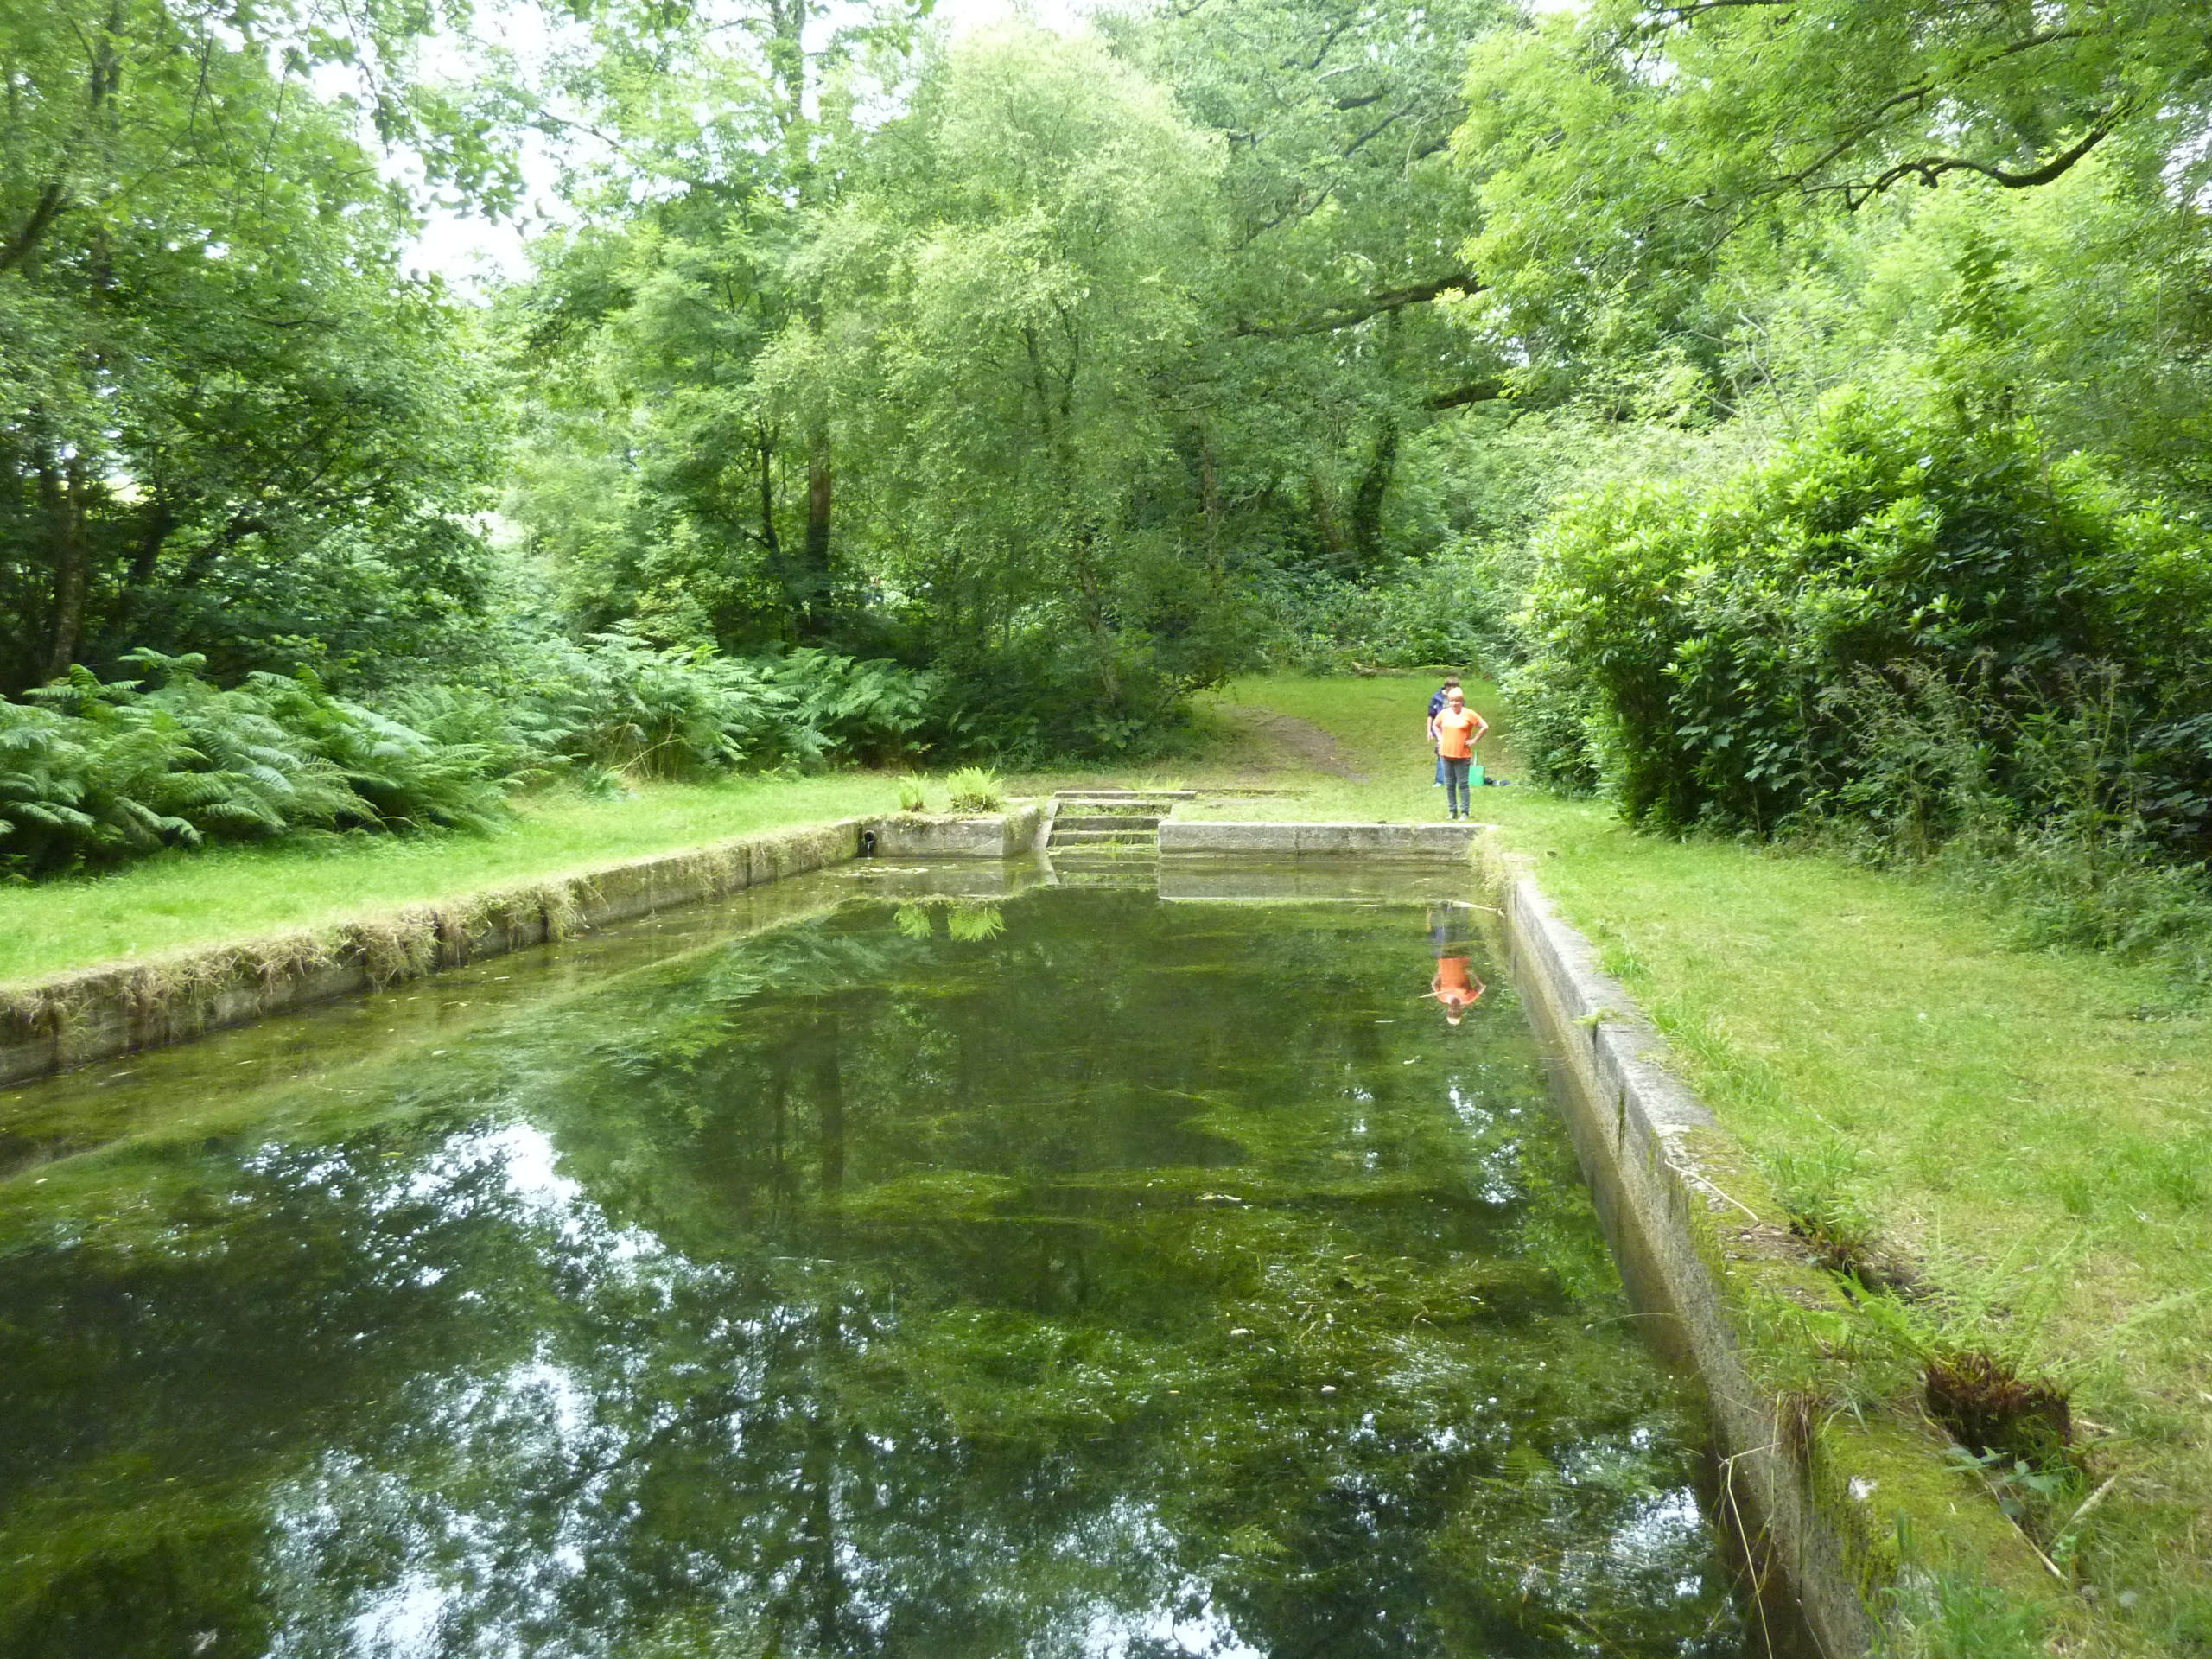 The old swimming pool at lanhydrock ripe for What to do with old swimming pool